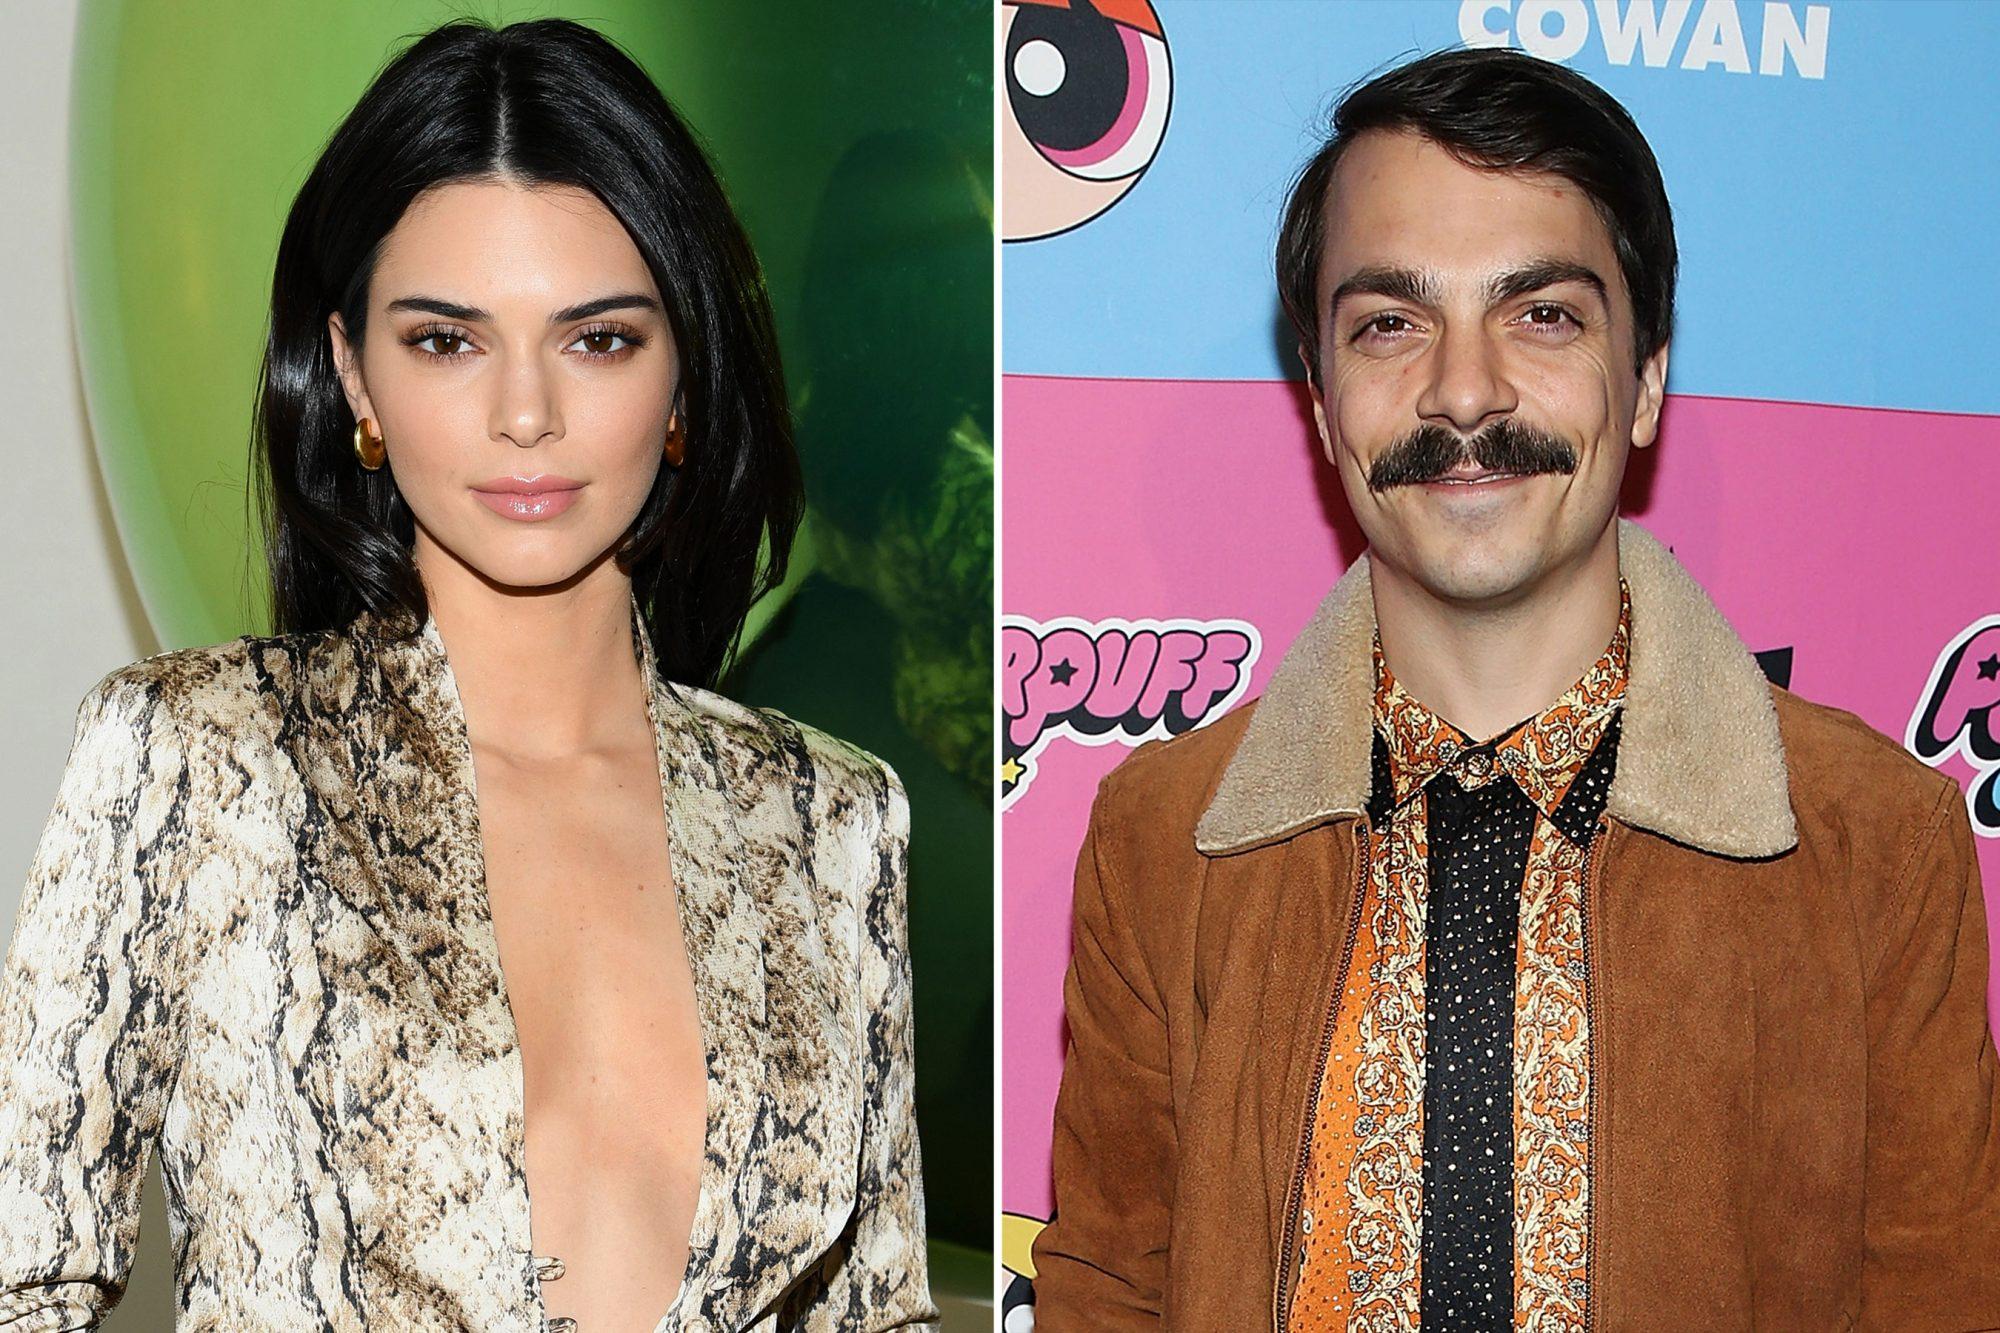 Kendal Jenner. and Kirby Jenner